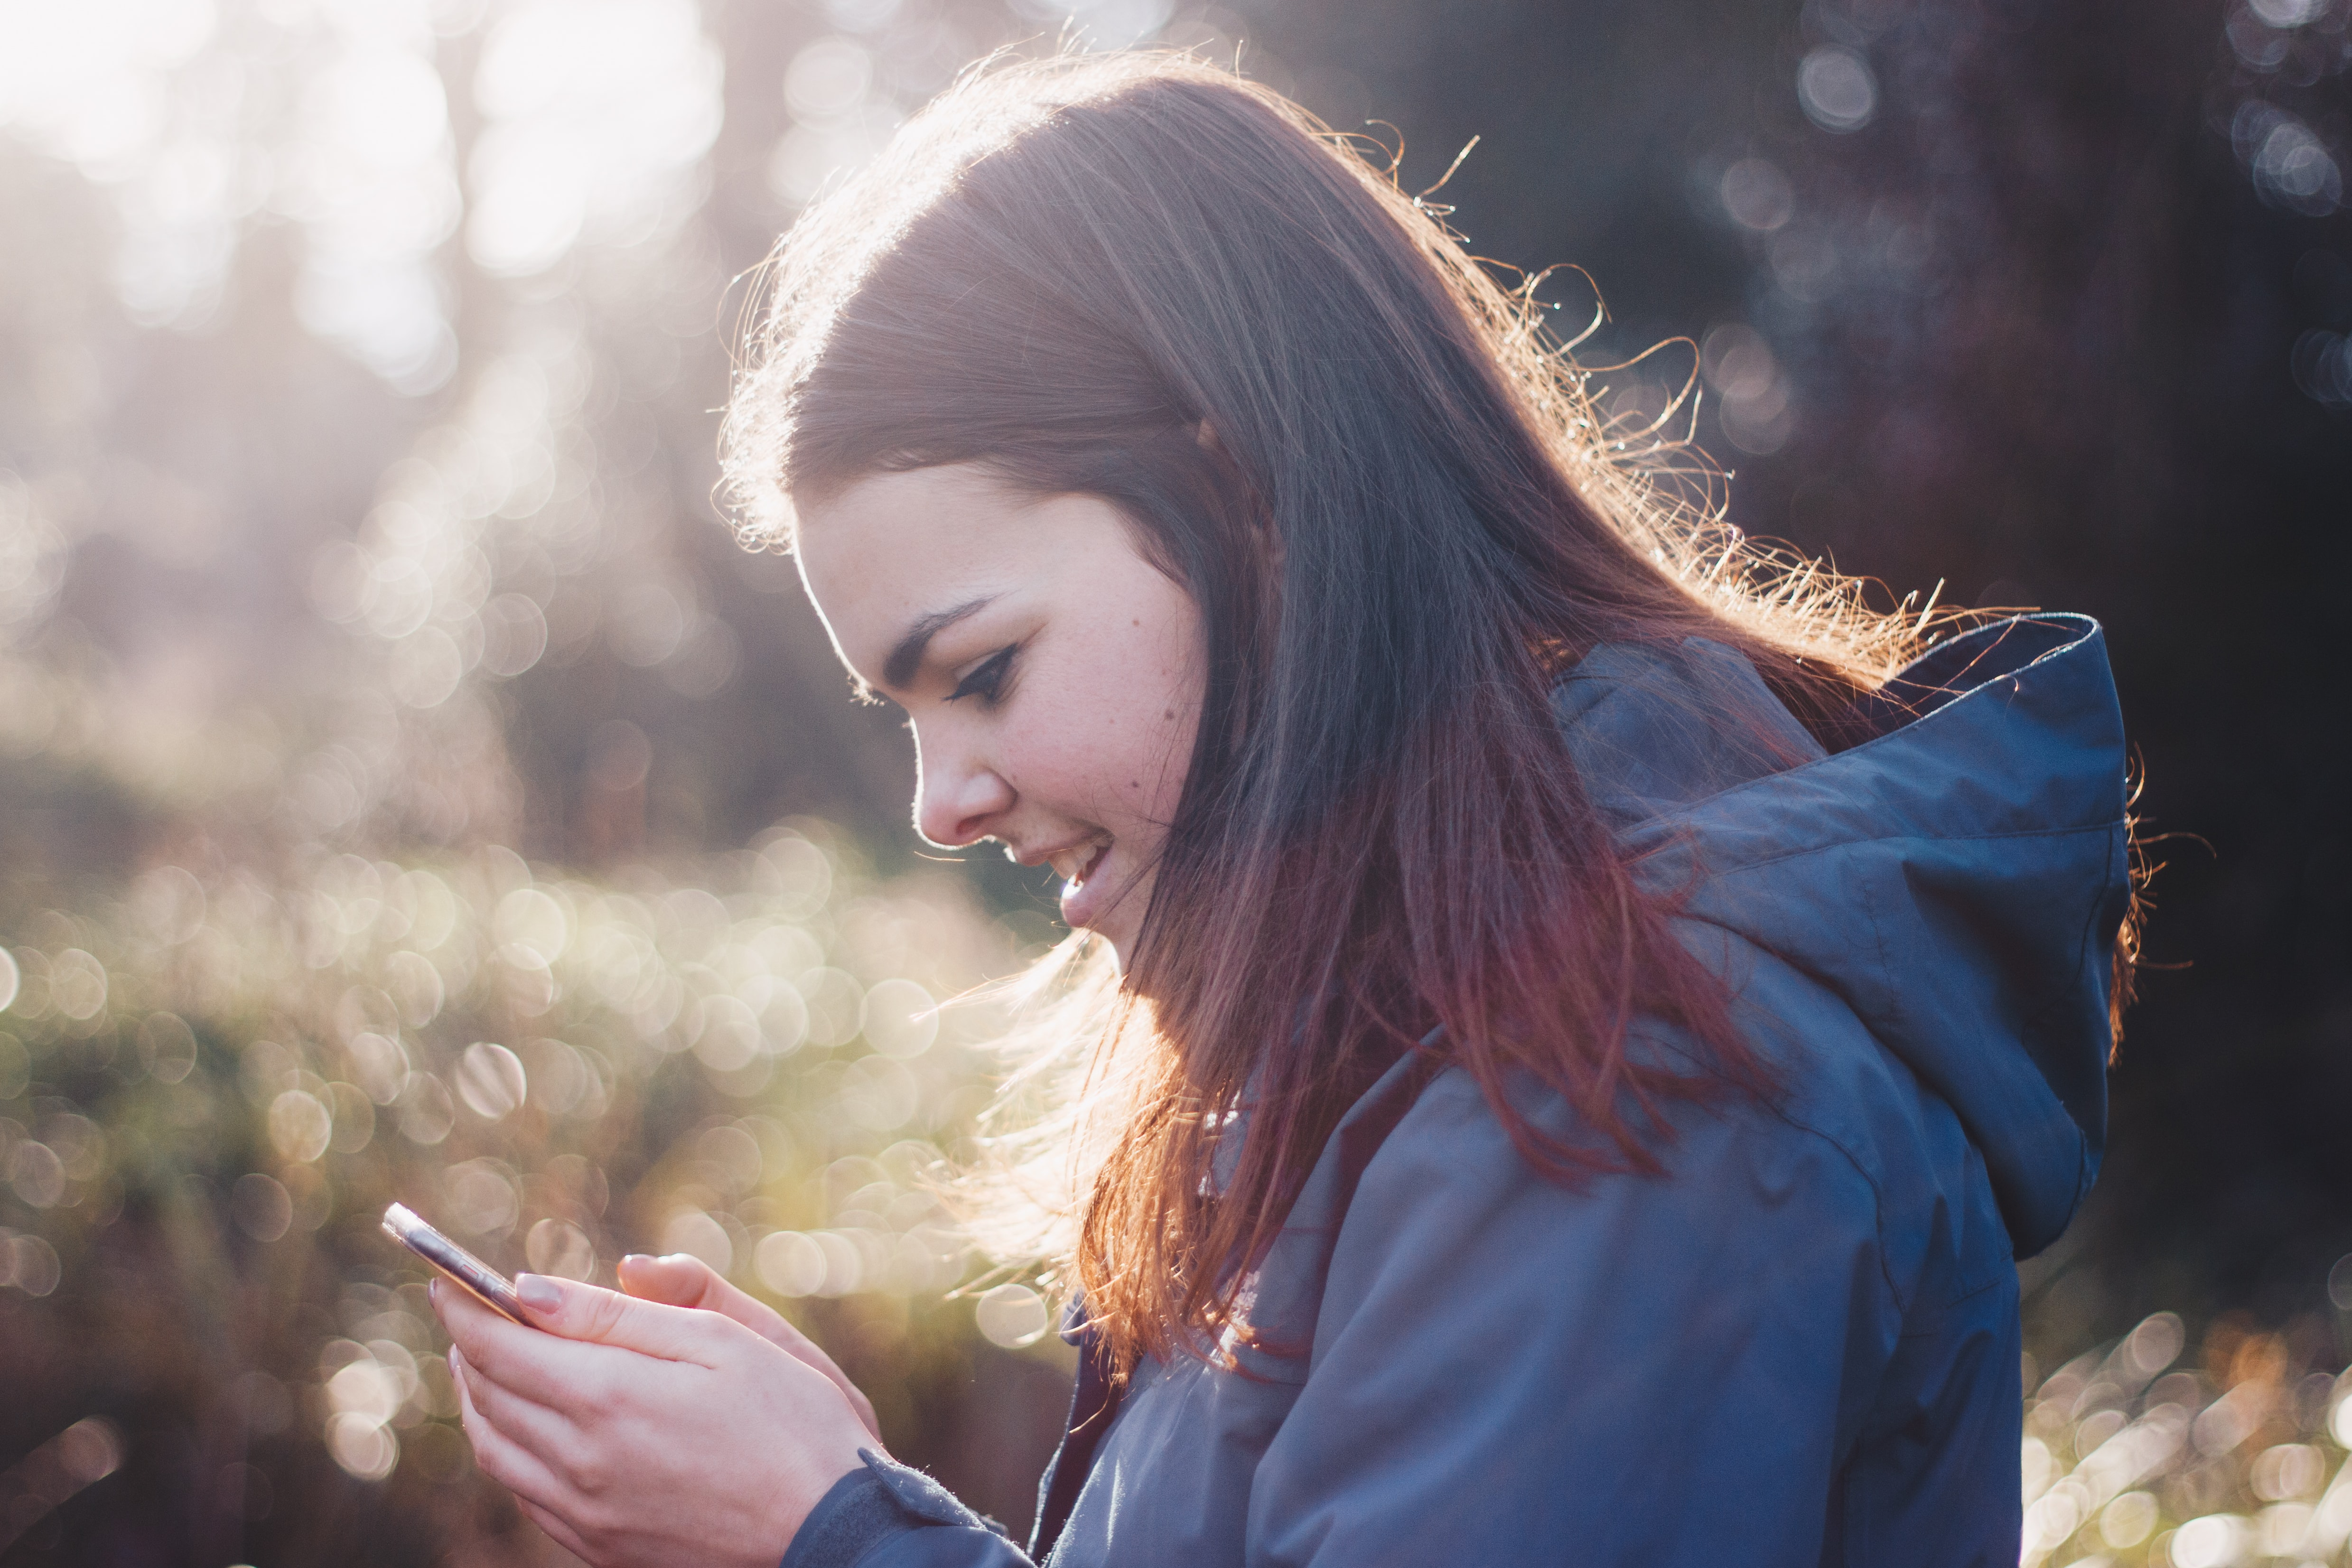 A young woman smiling while looking at a smartphone